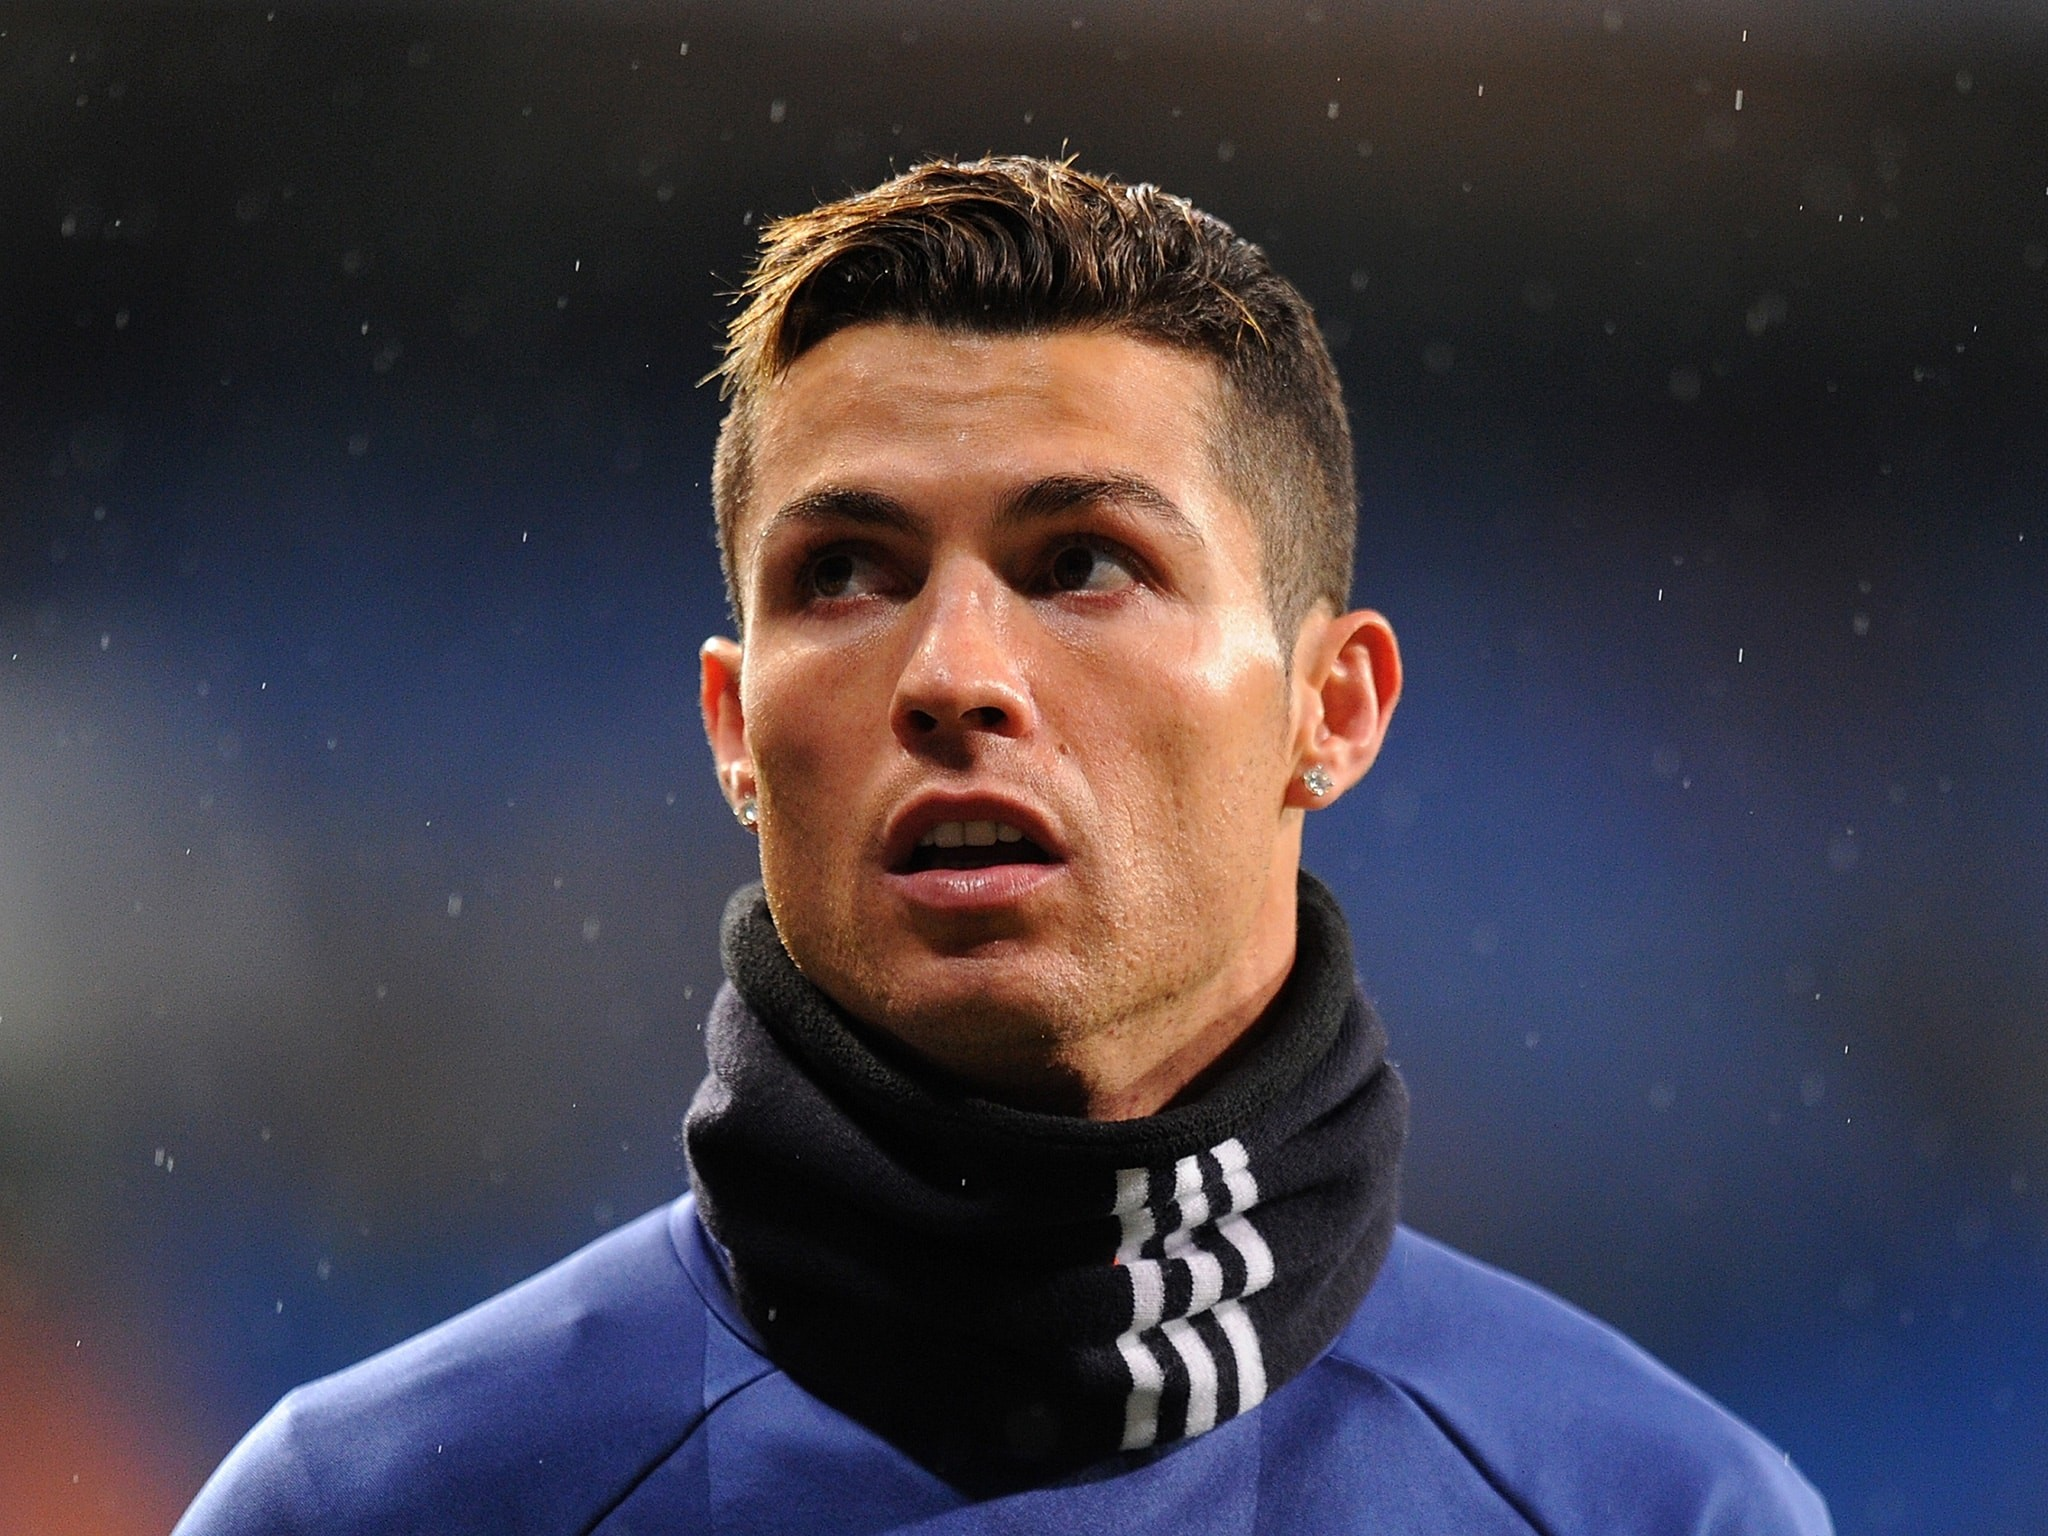 Cristiano Ronaldo Wallpapers (75+ Background Pictures